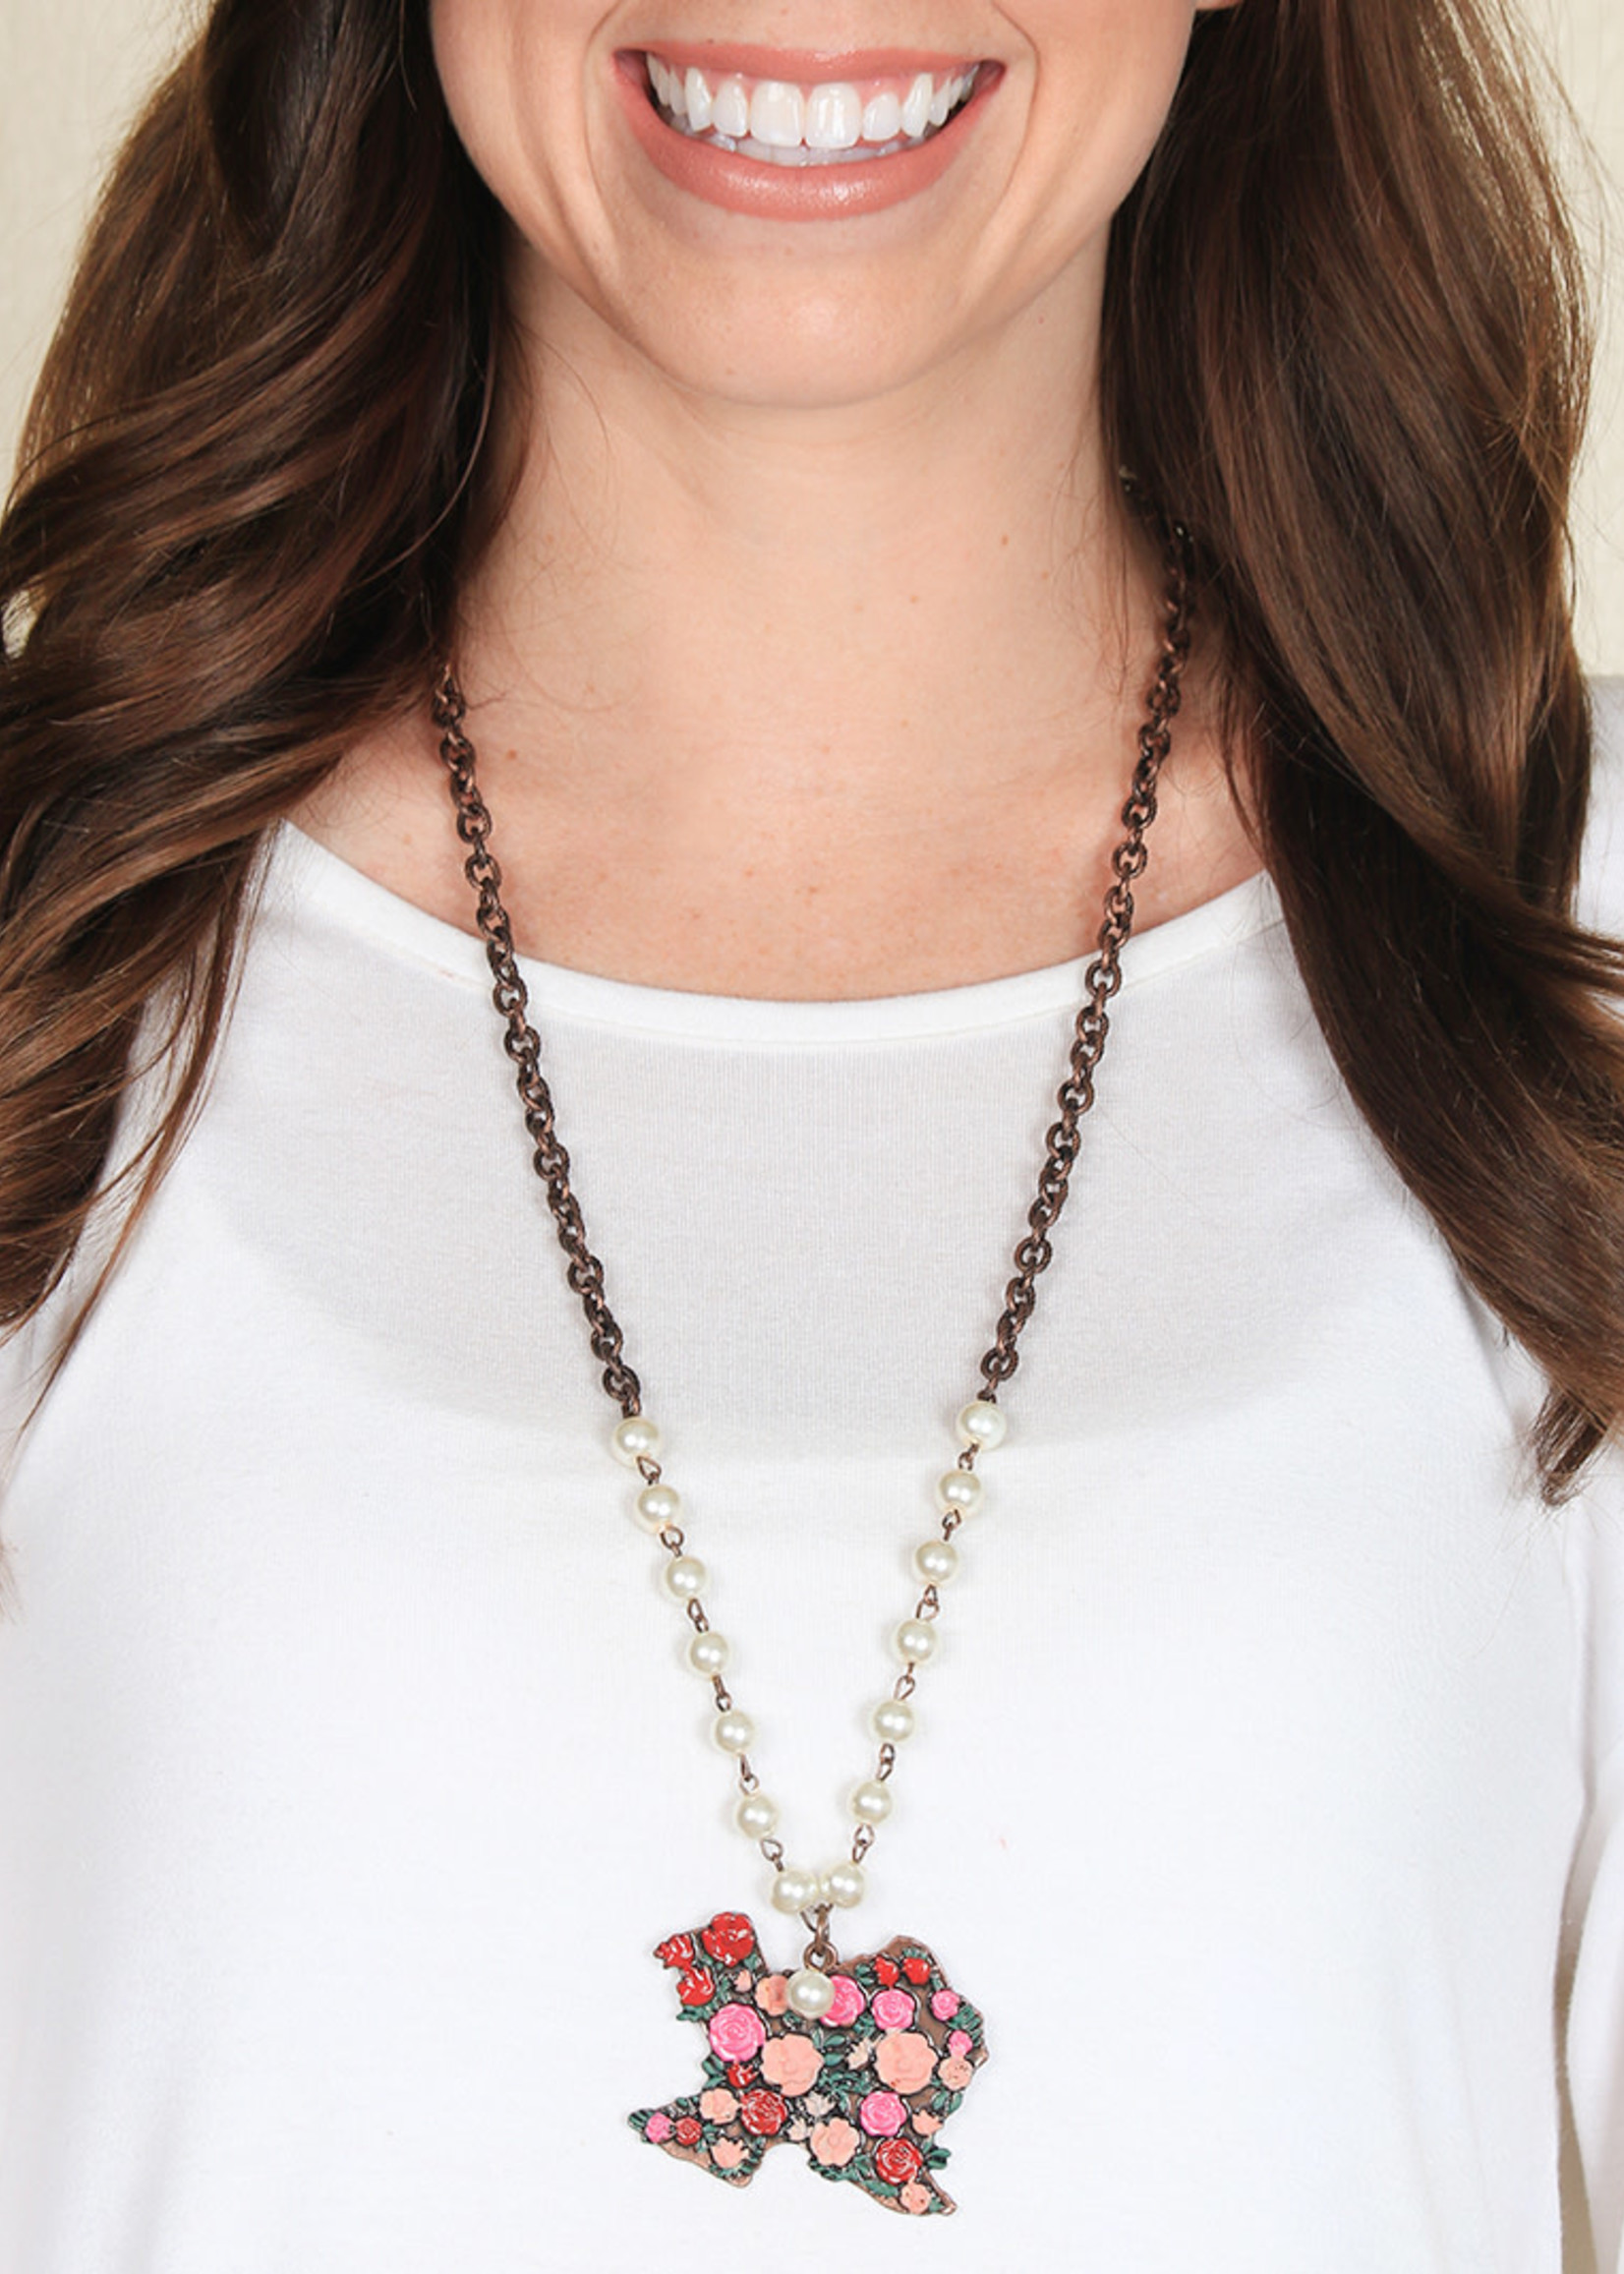 Floral Texas Necklace w/ AB Crystals